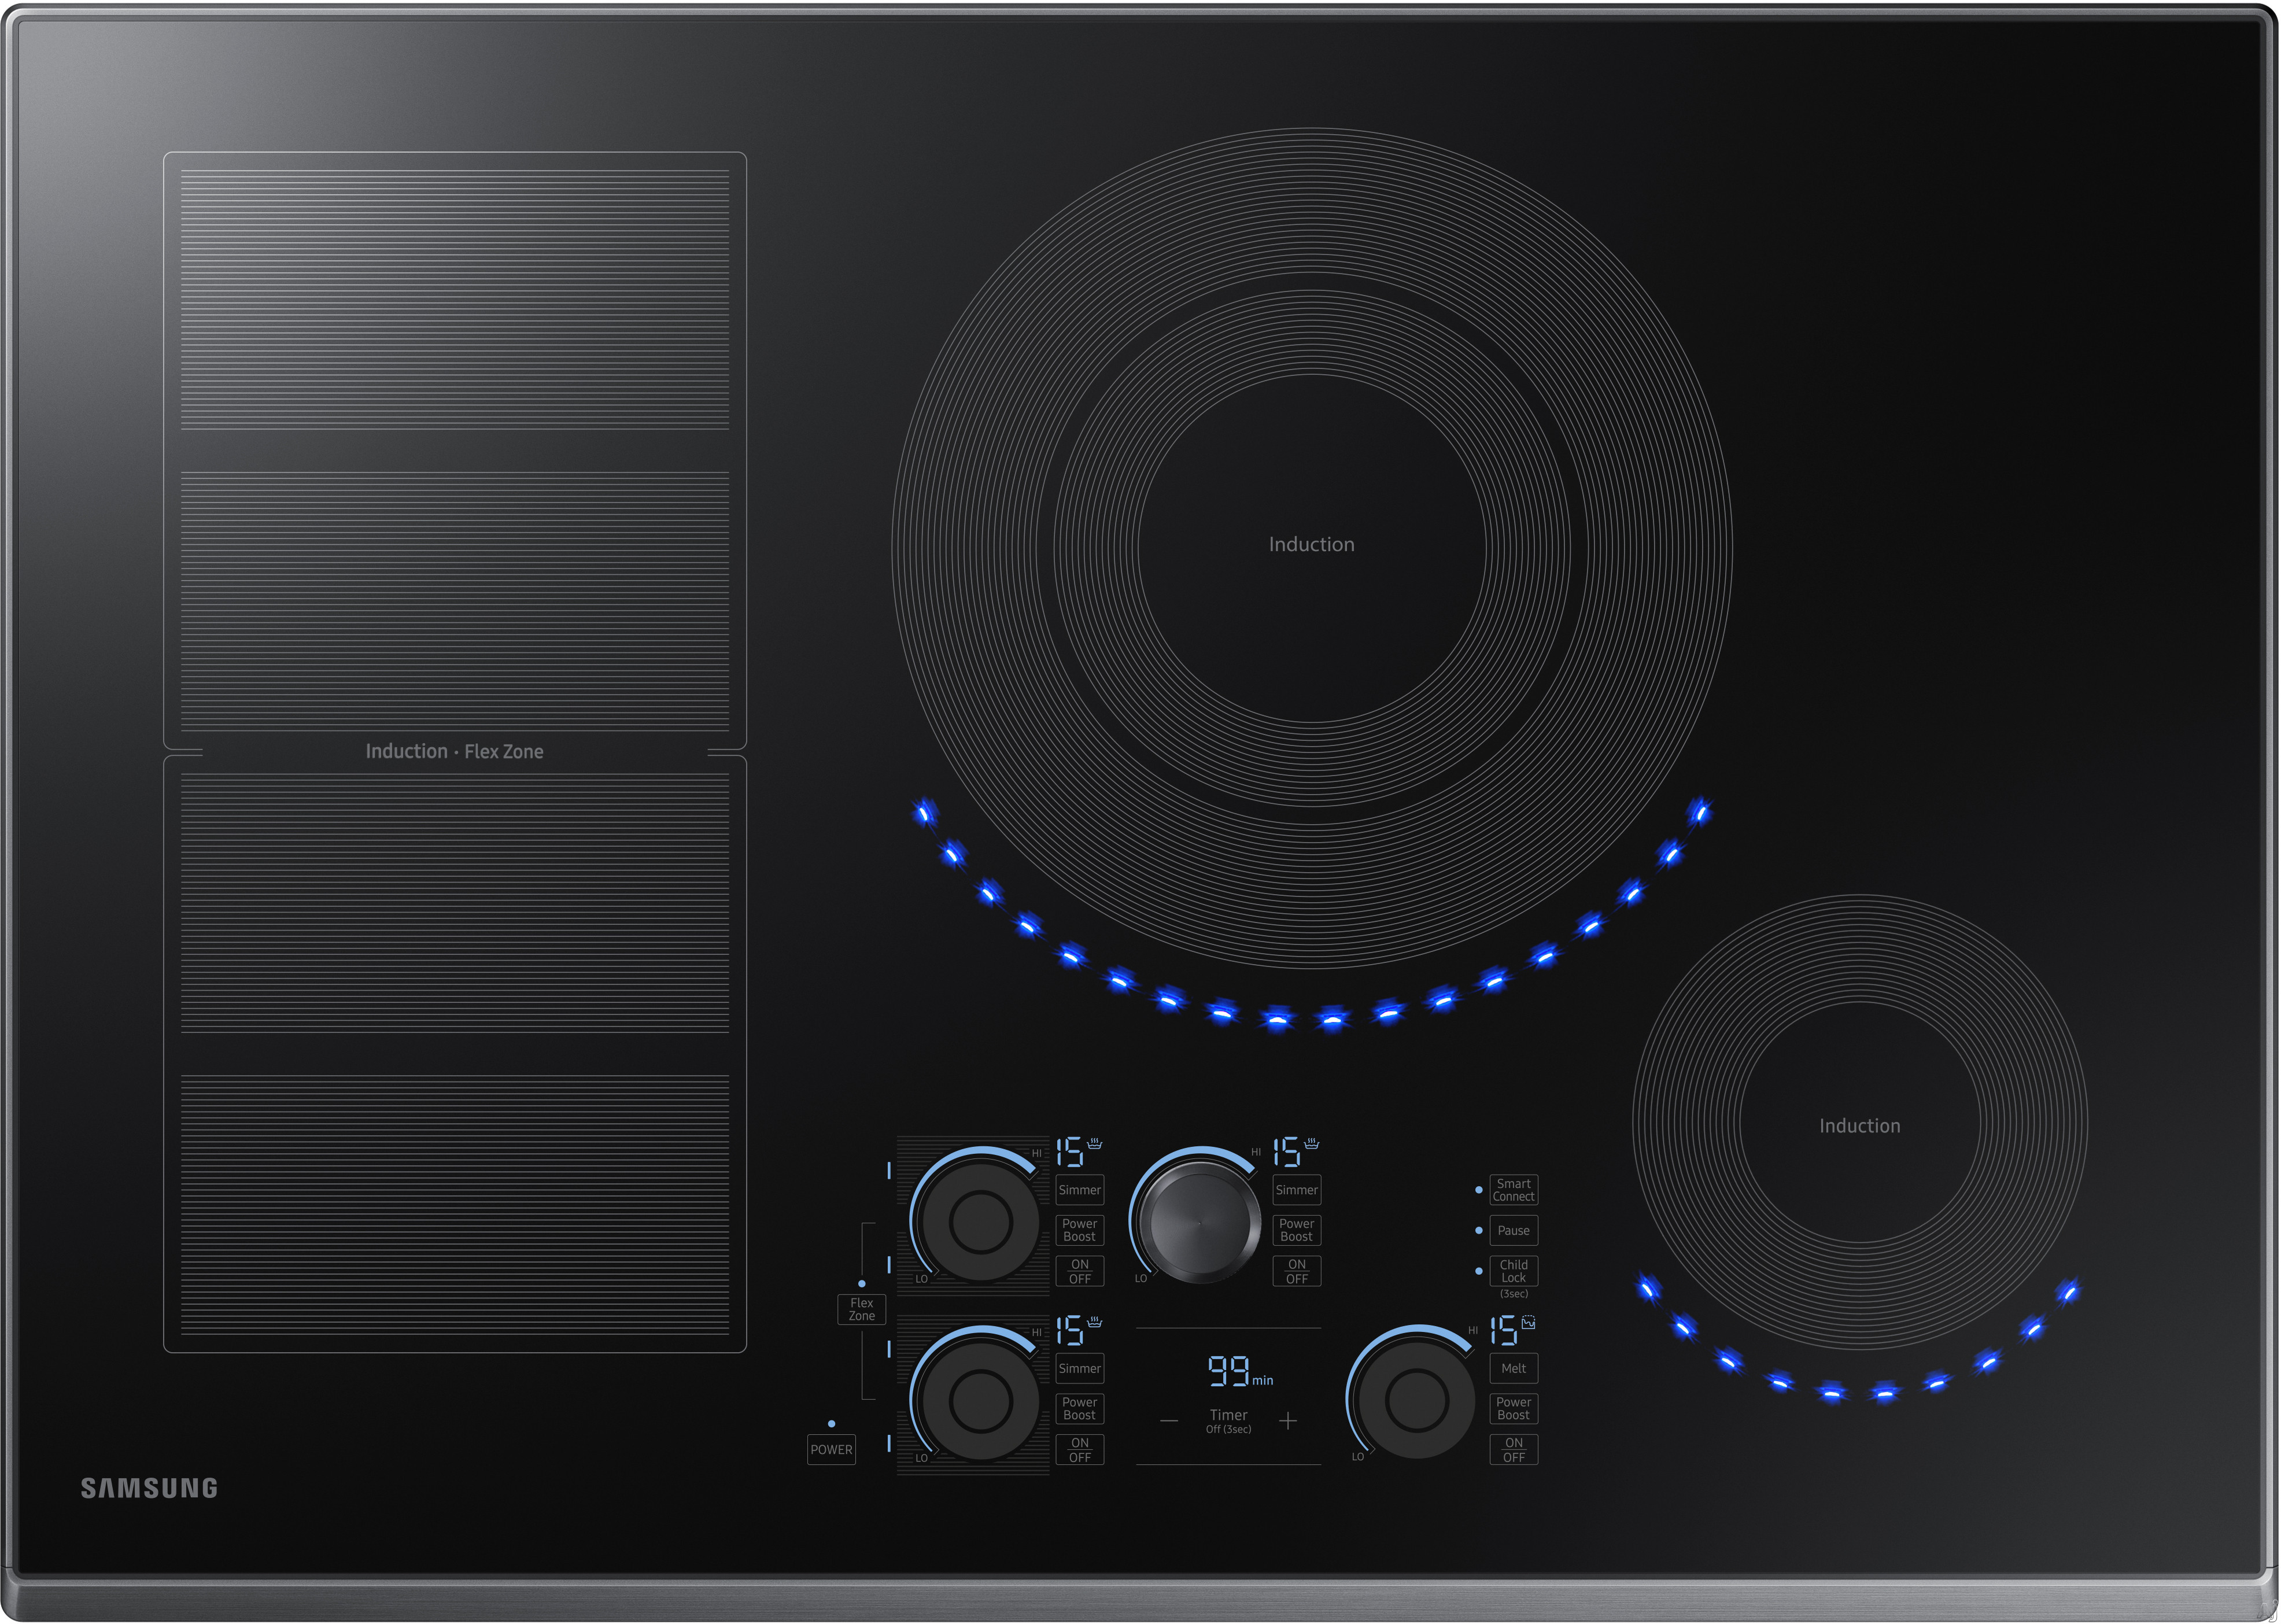 Samsung NZ30K7880UG 30 Inch Induction Cooktop with Flex Zone, 15 Heat Settings, Power Boost, Melt Mode, Simmer Control, Virtual Flame Surface Lights, Timer, Control Lock and Wi-Fi Connectivity: Black